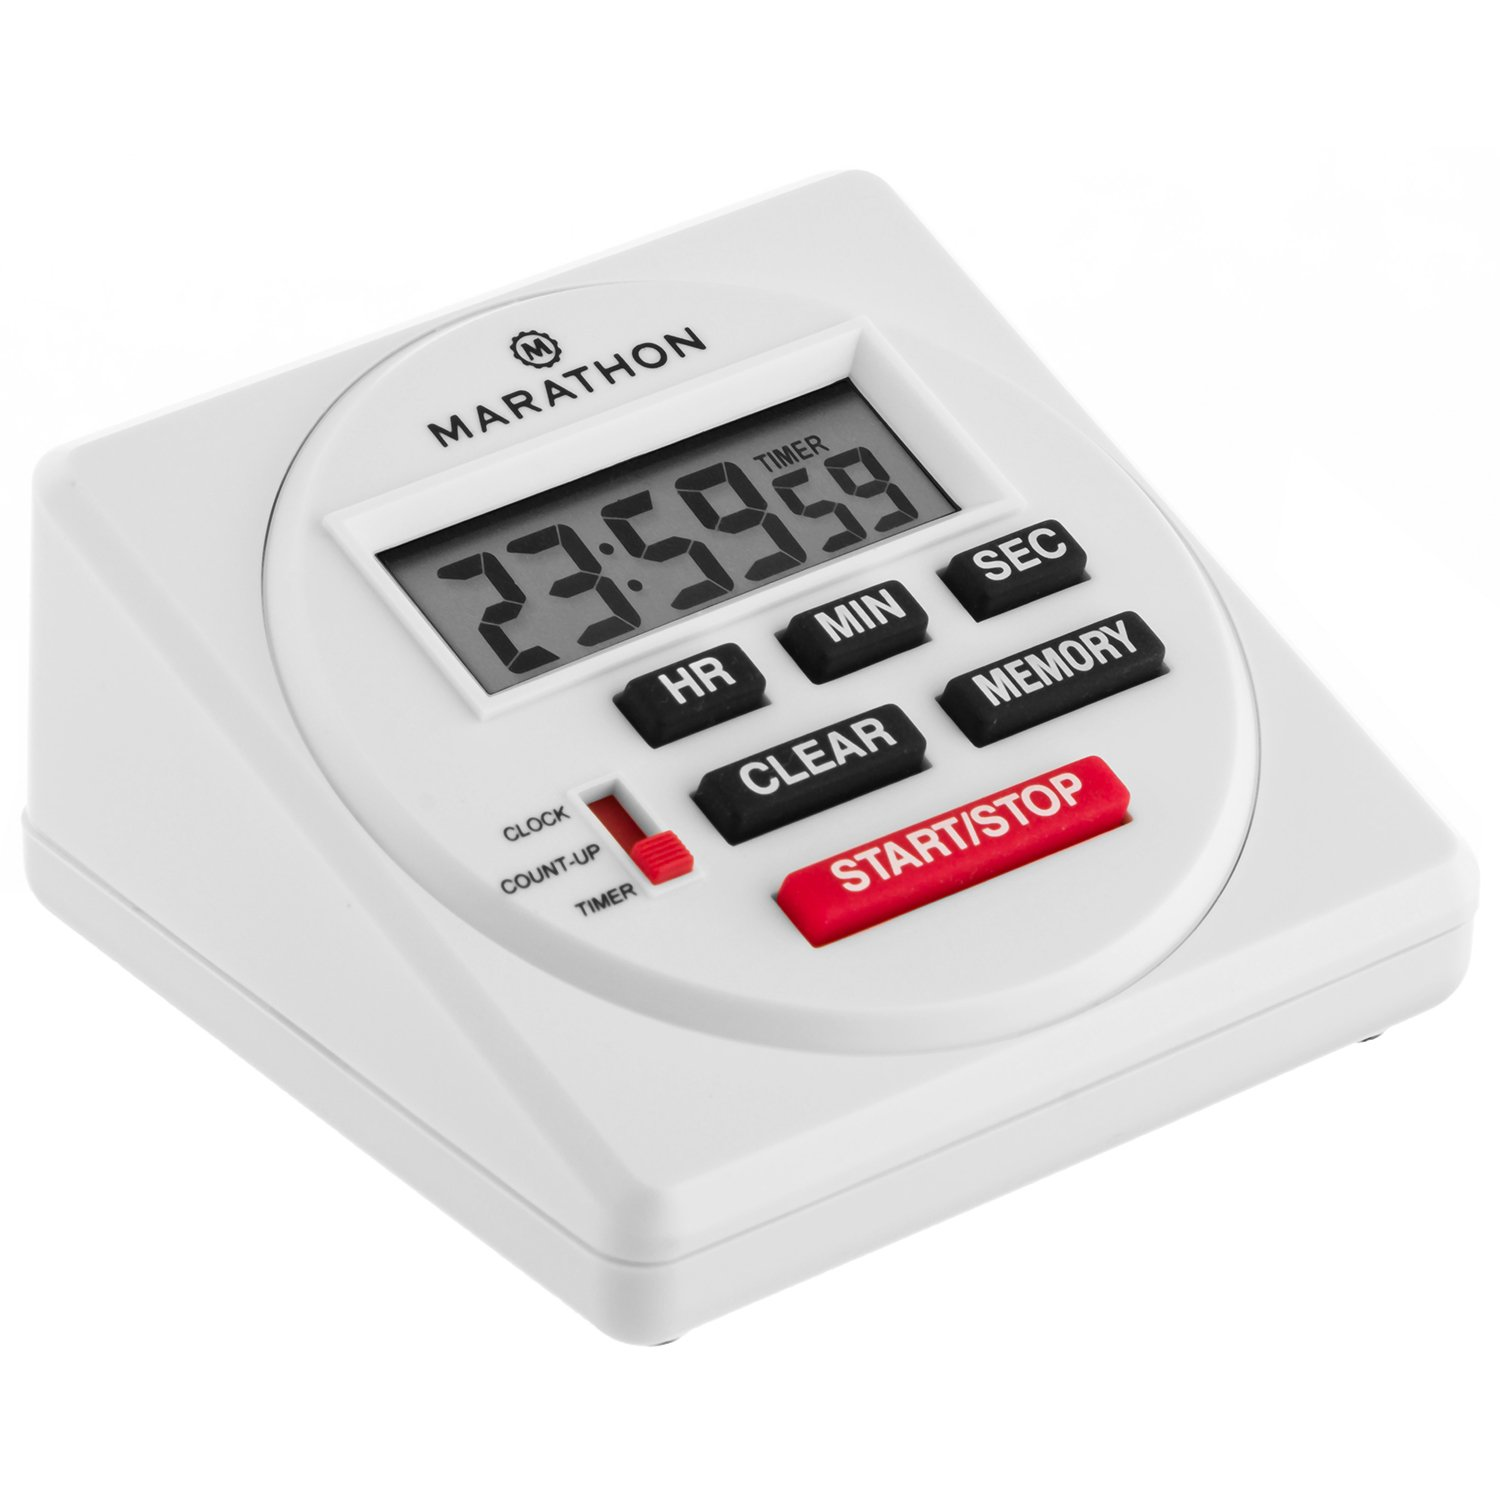 MARATHON TI080001BK Large Commercial Grade Digital 24 Hour Timer with Countdown, Count-up and Clock Feature - Batteries Included - New & Improved!